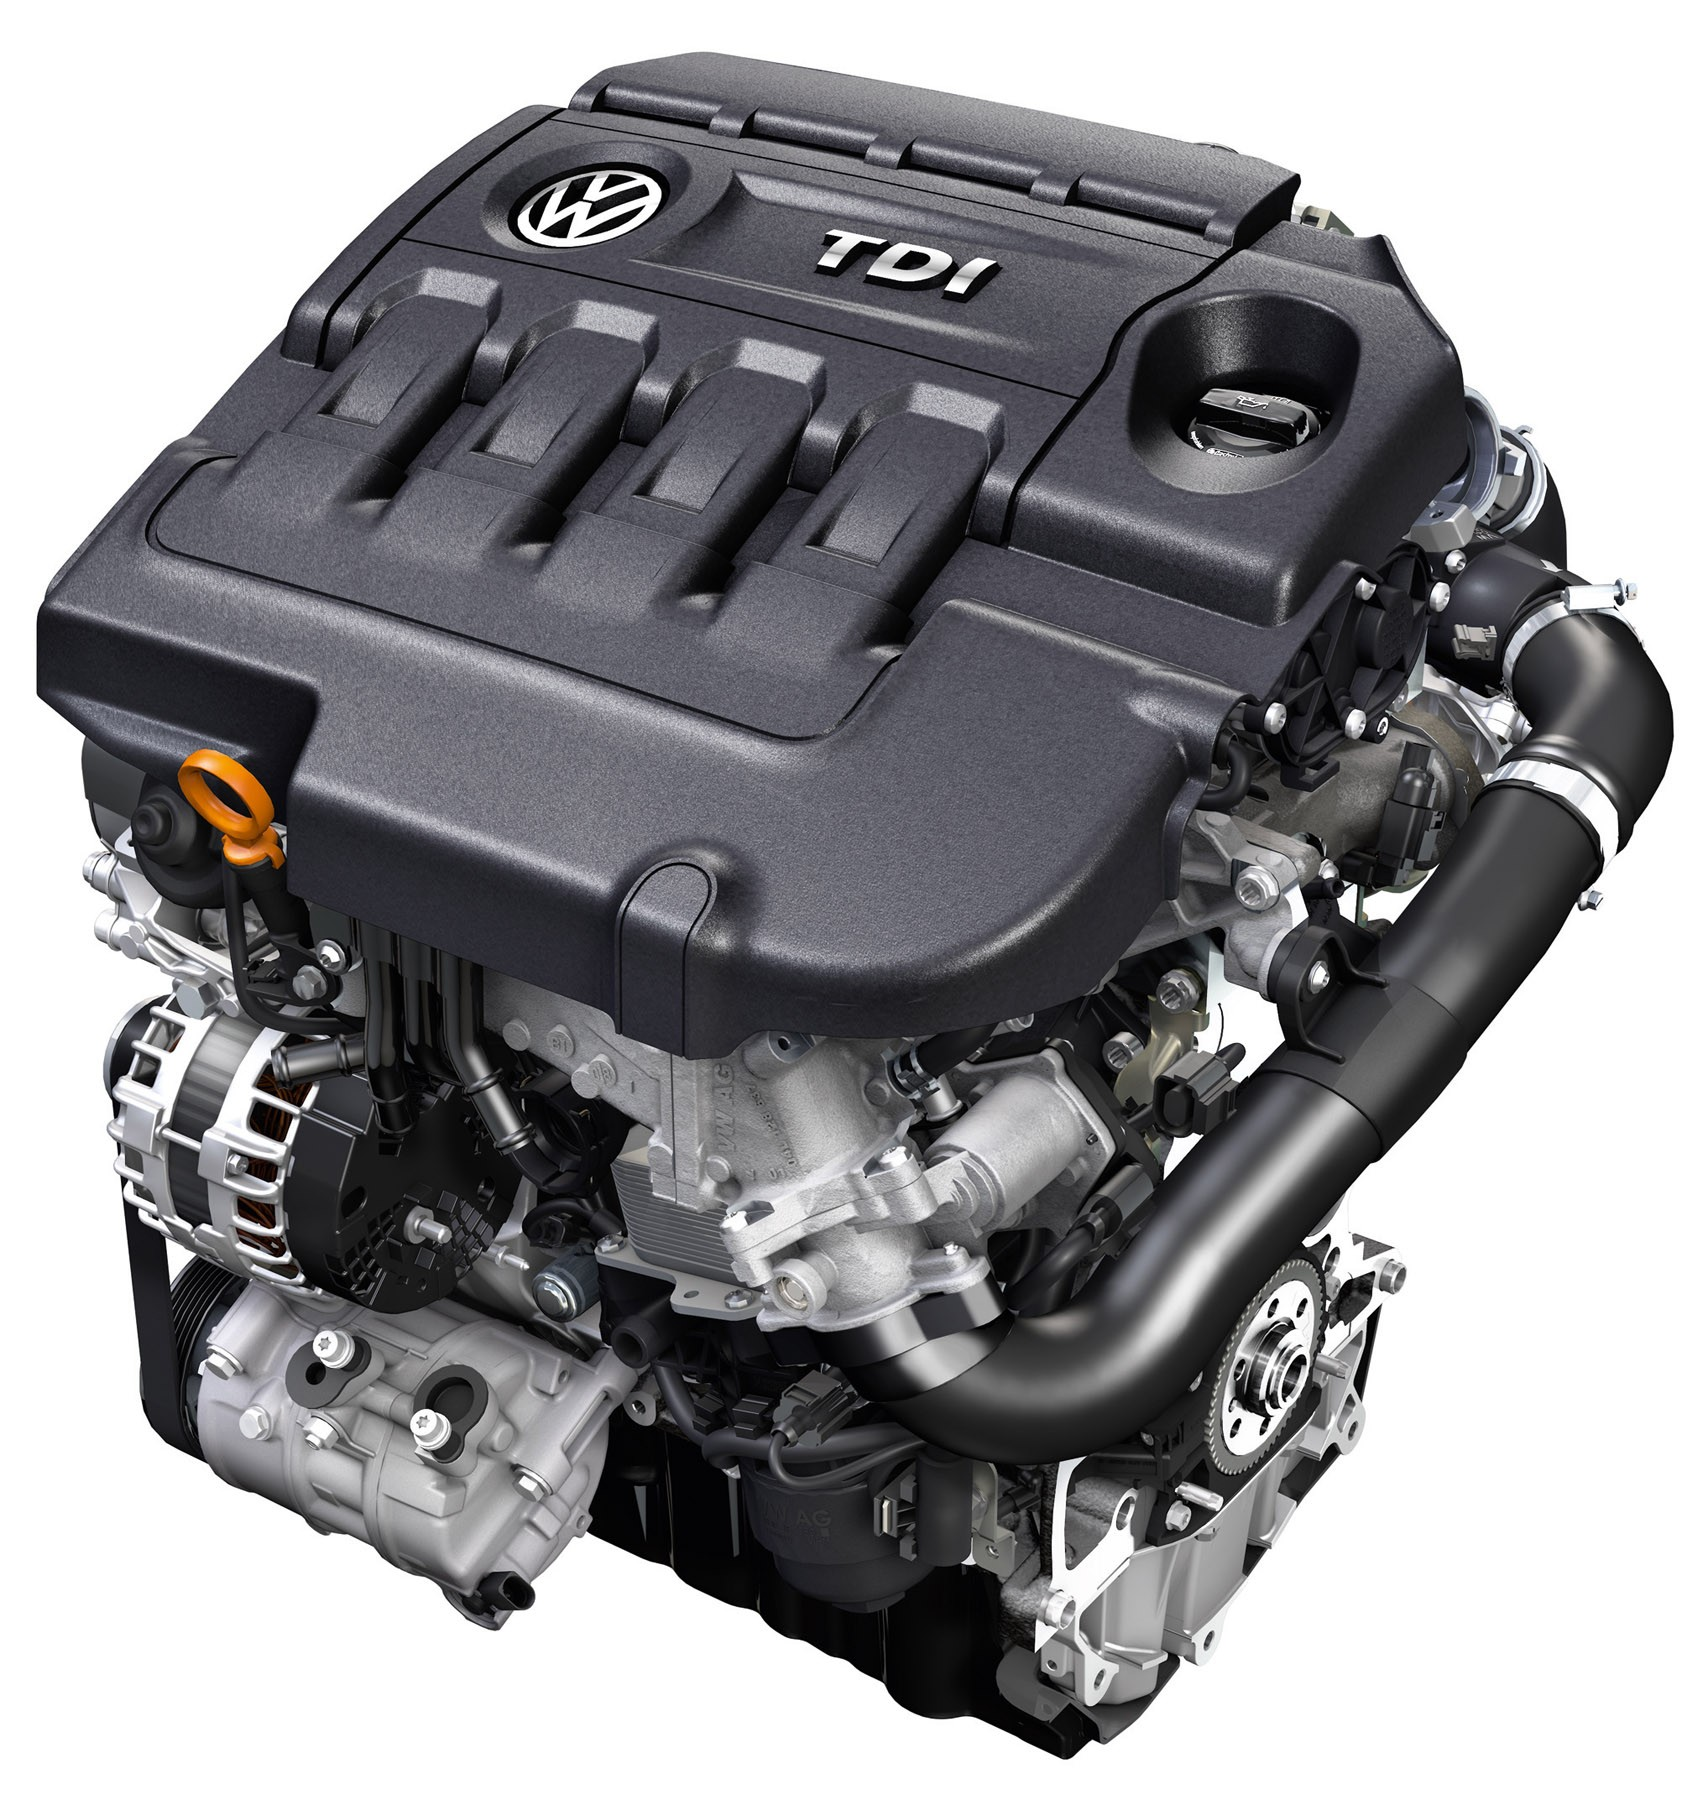 Tdi Turbo Sel Engine